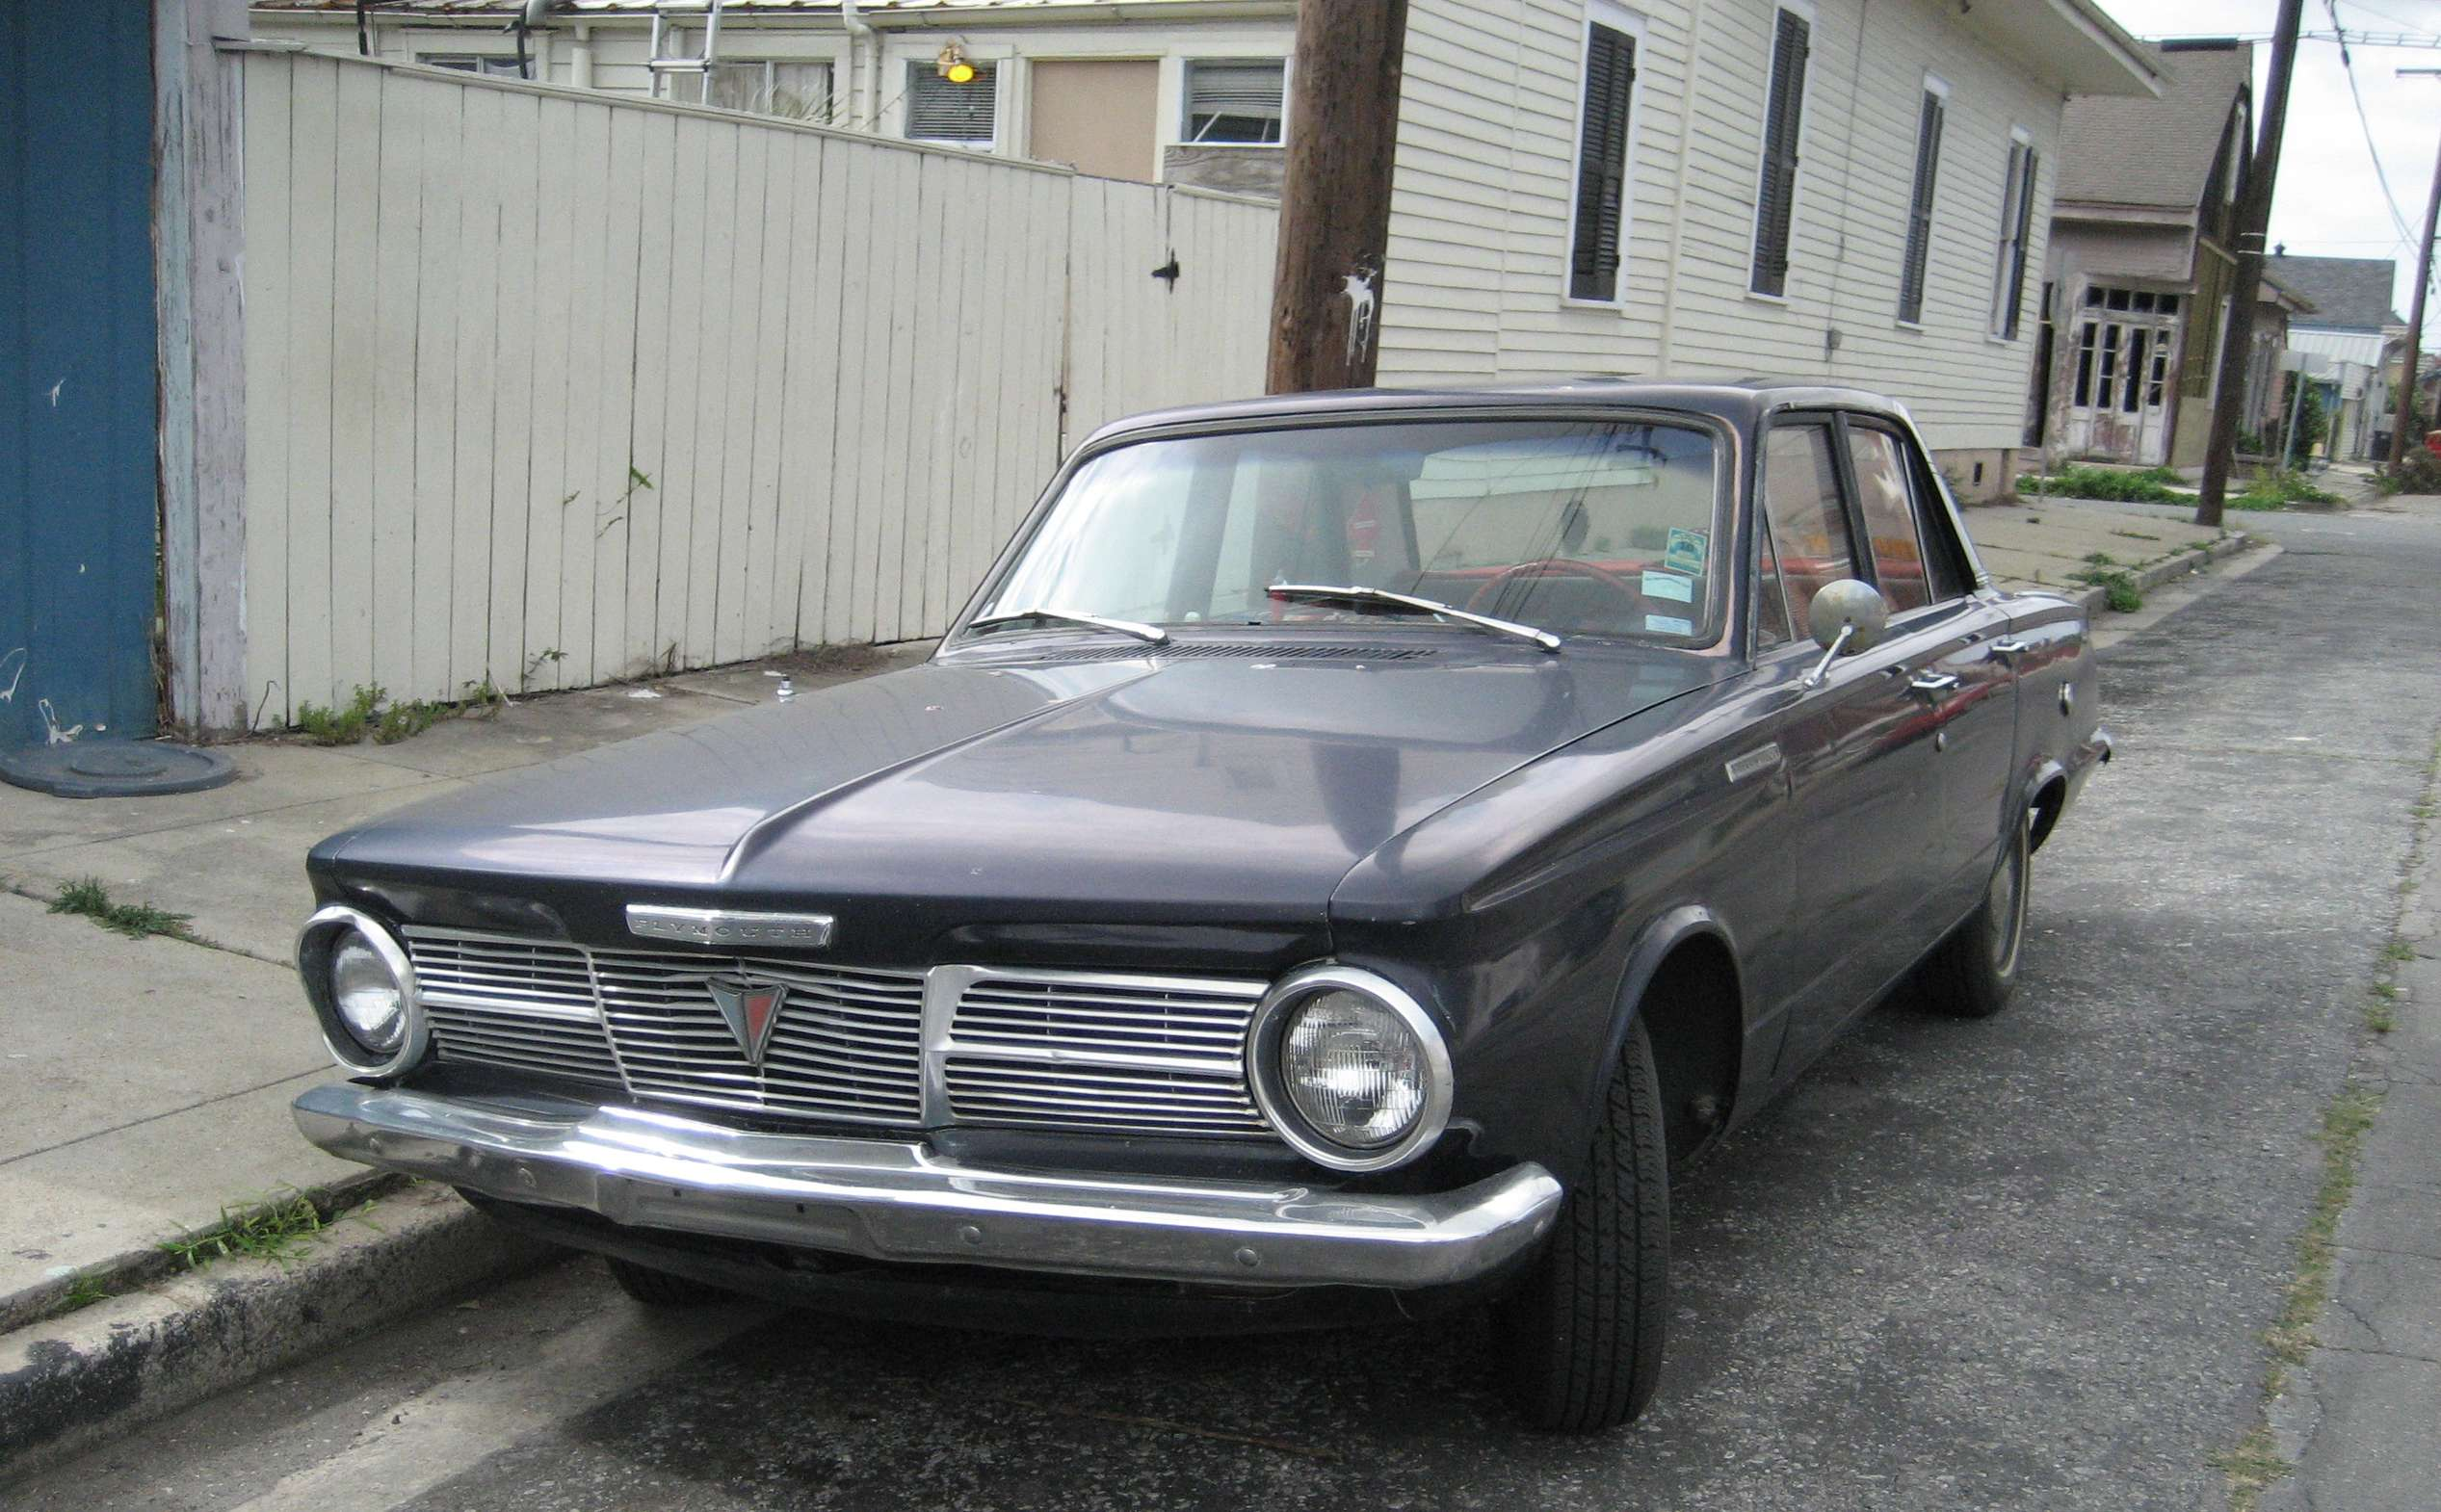 Plymouth Valiant #8001630